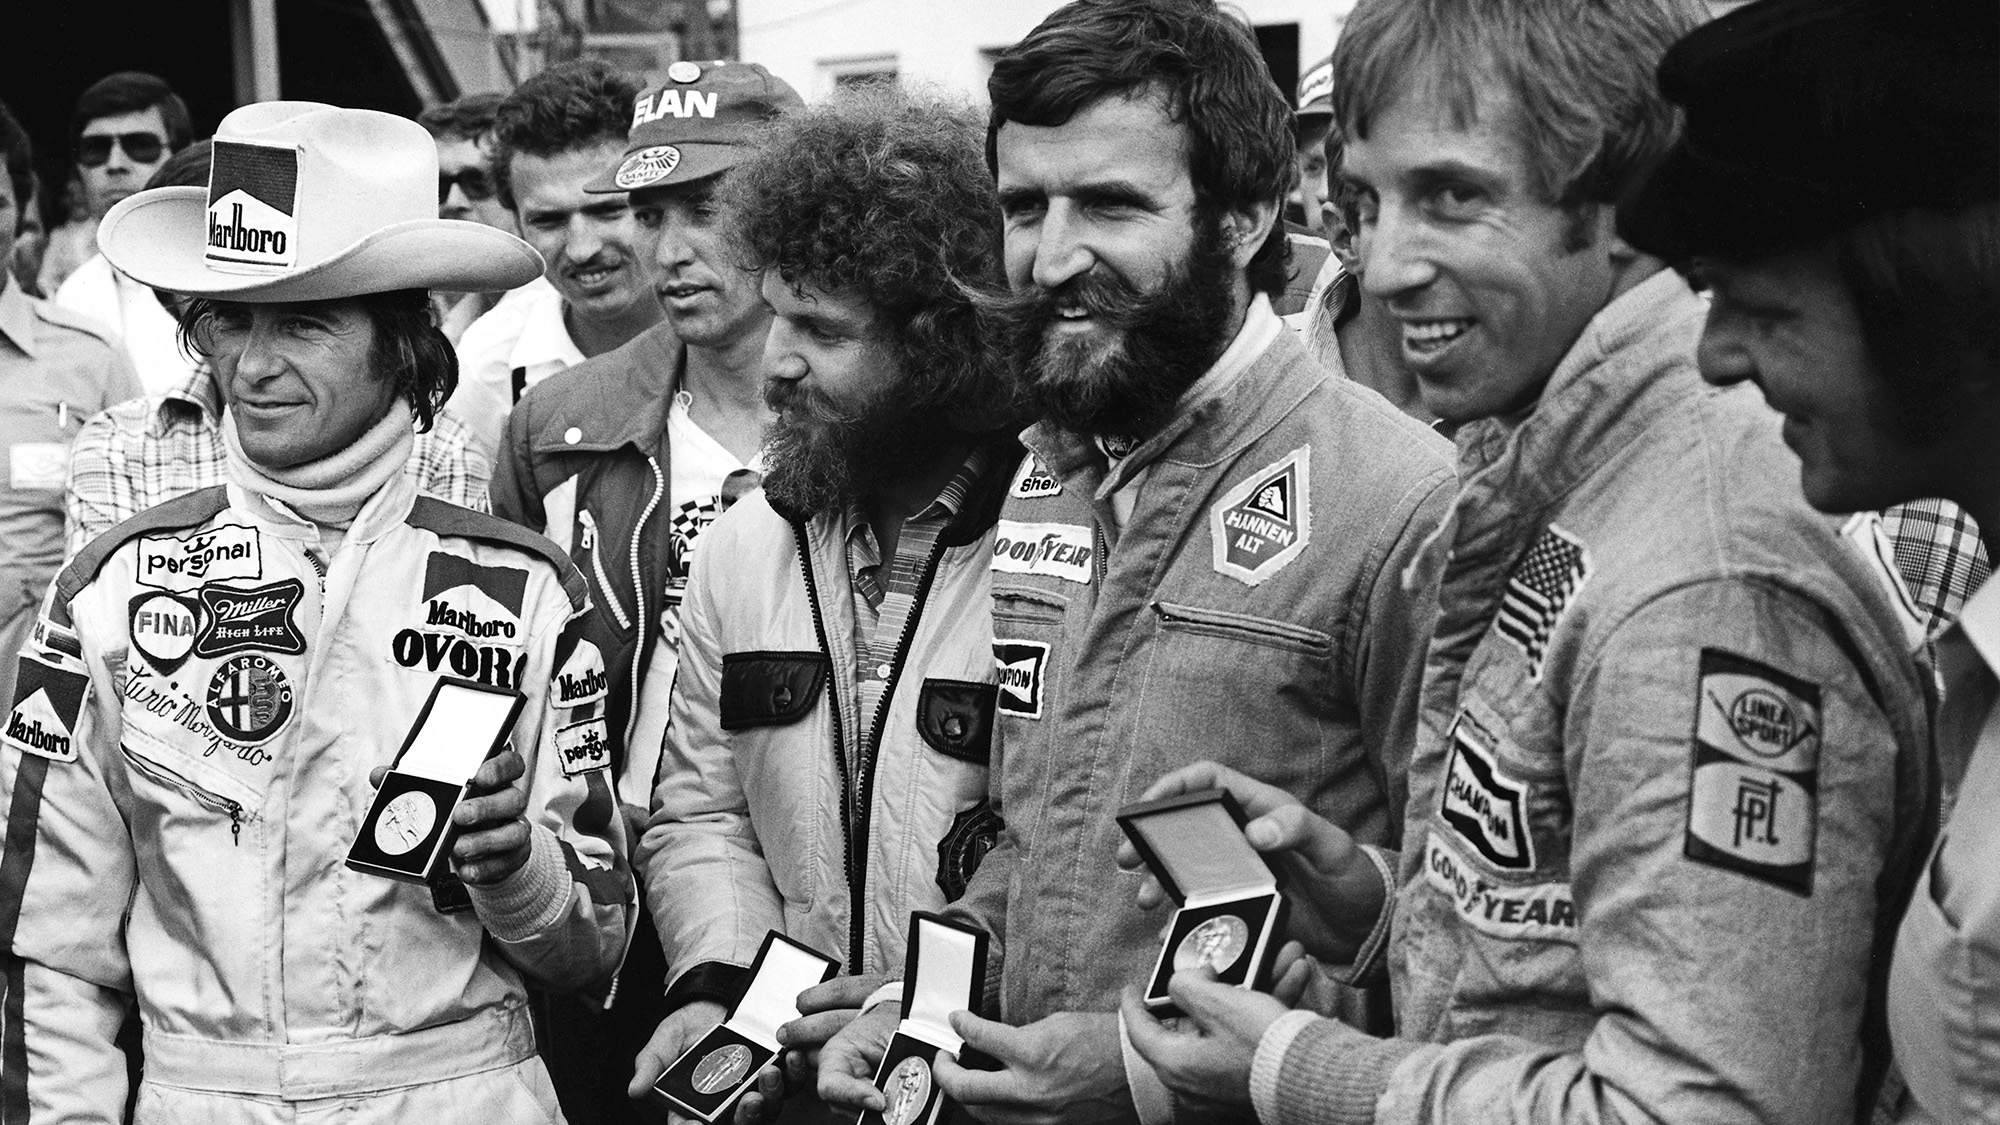 Arturo Merzario receives a medal for helping to save Niki Lauda's life along with a representative of Guy Edwards, Harald Ertl and Brett Lunger